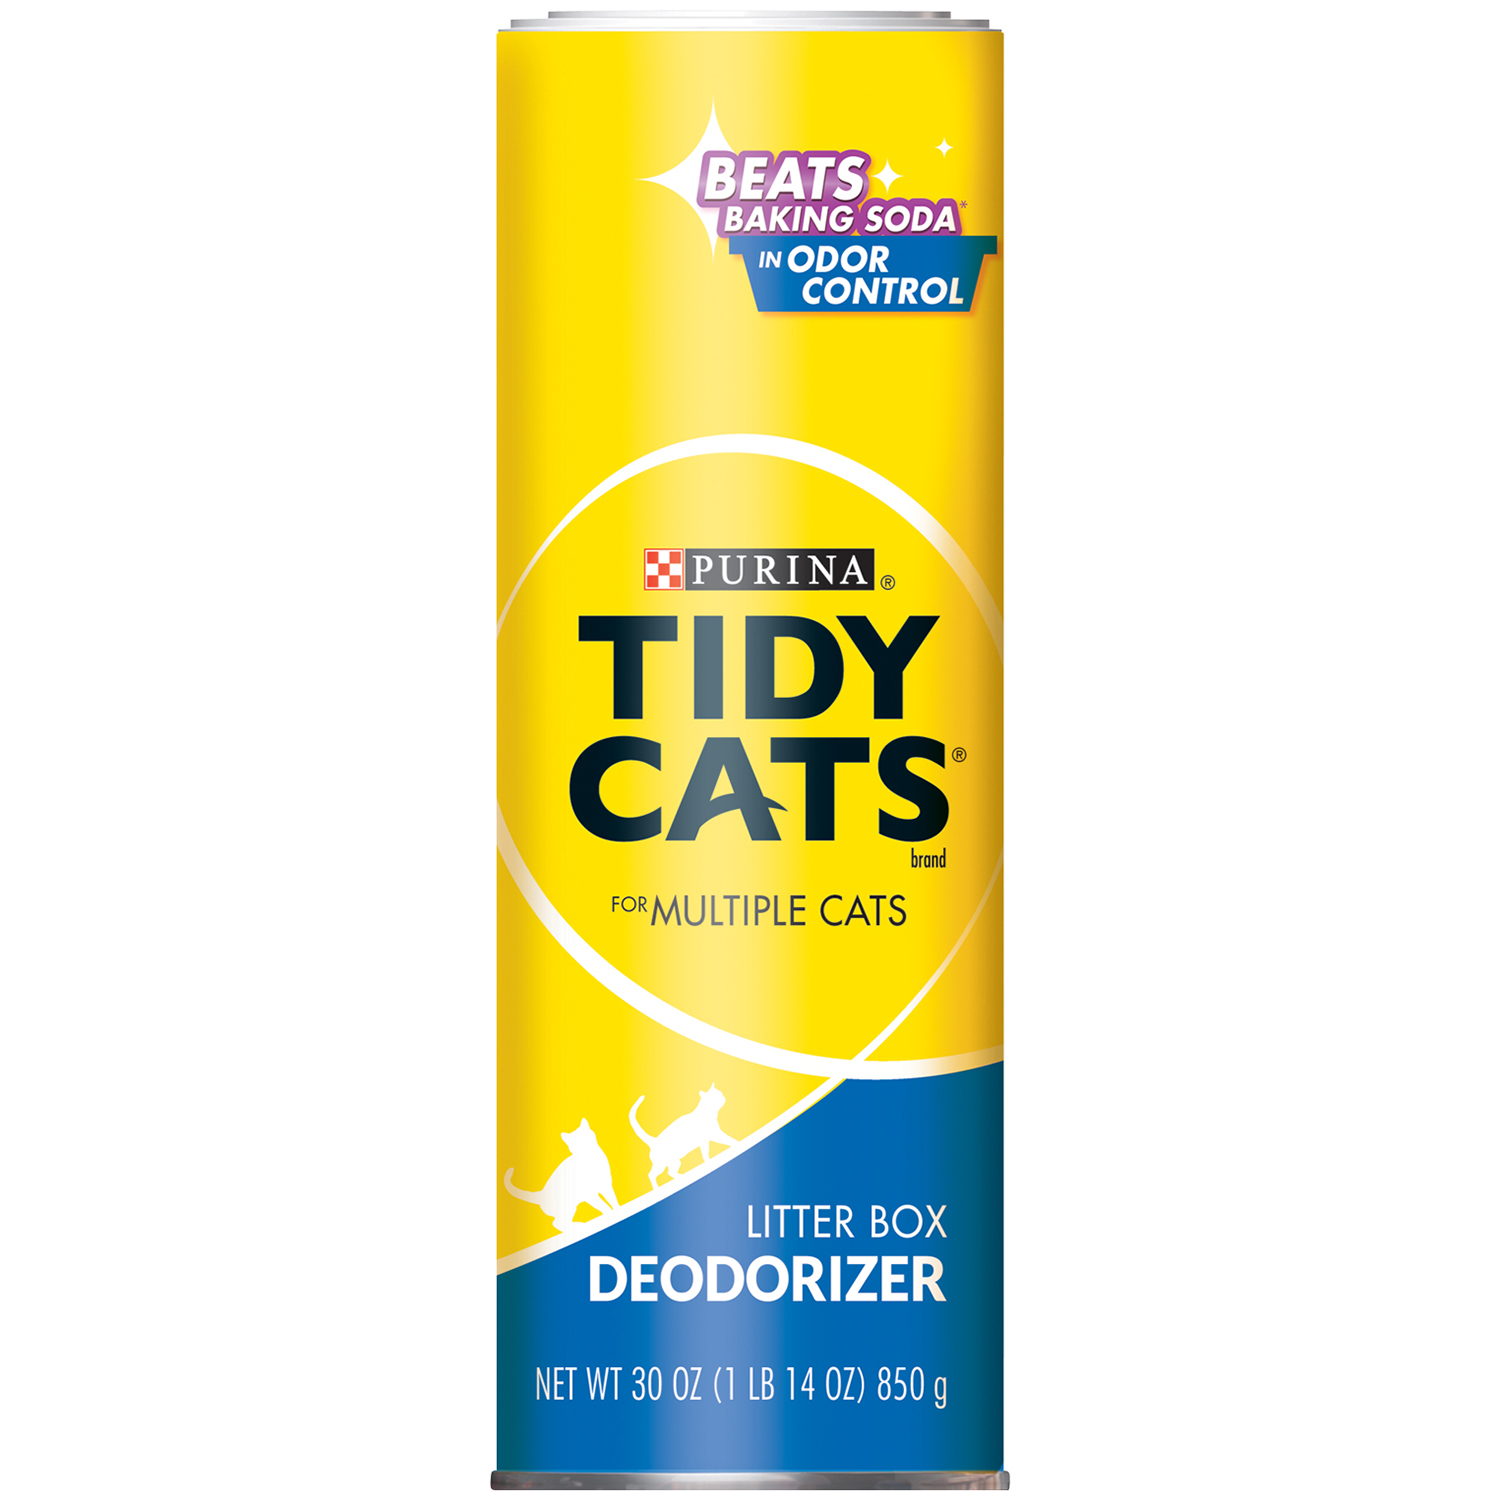 Purina Tidy Cats Litter Box Deodorizer for Multiple Cats 30 oz. Canister